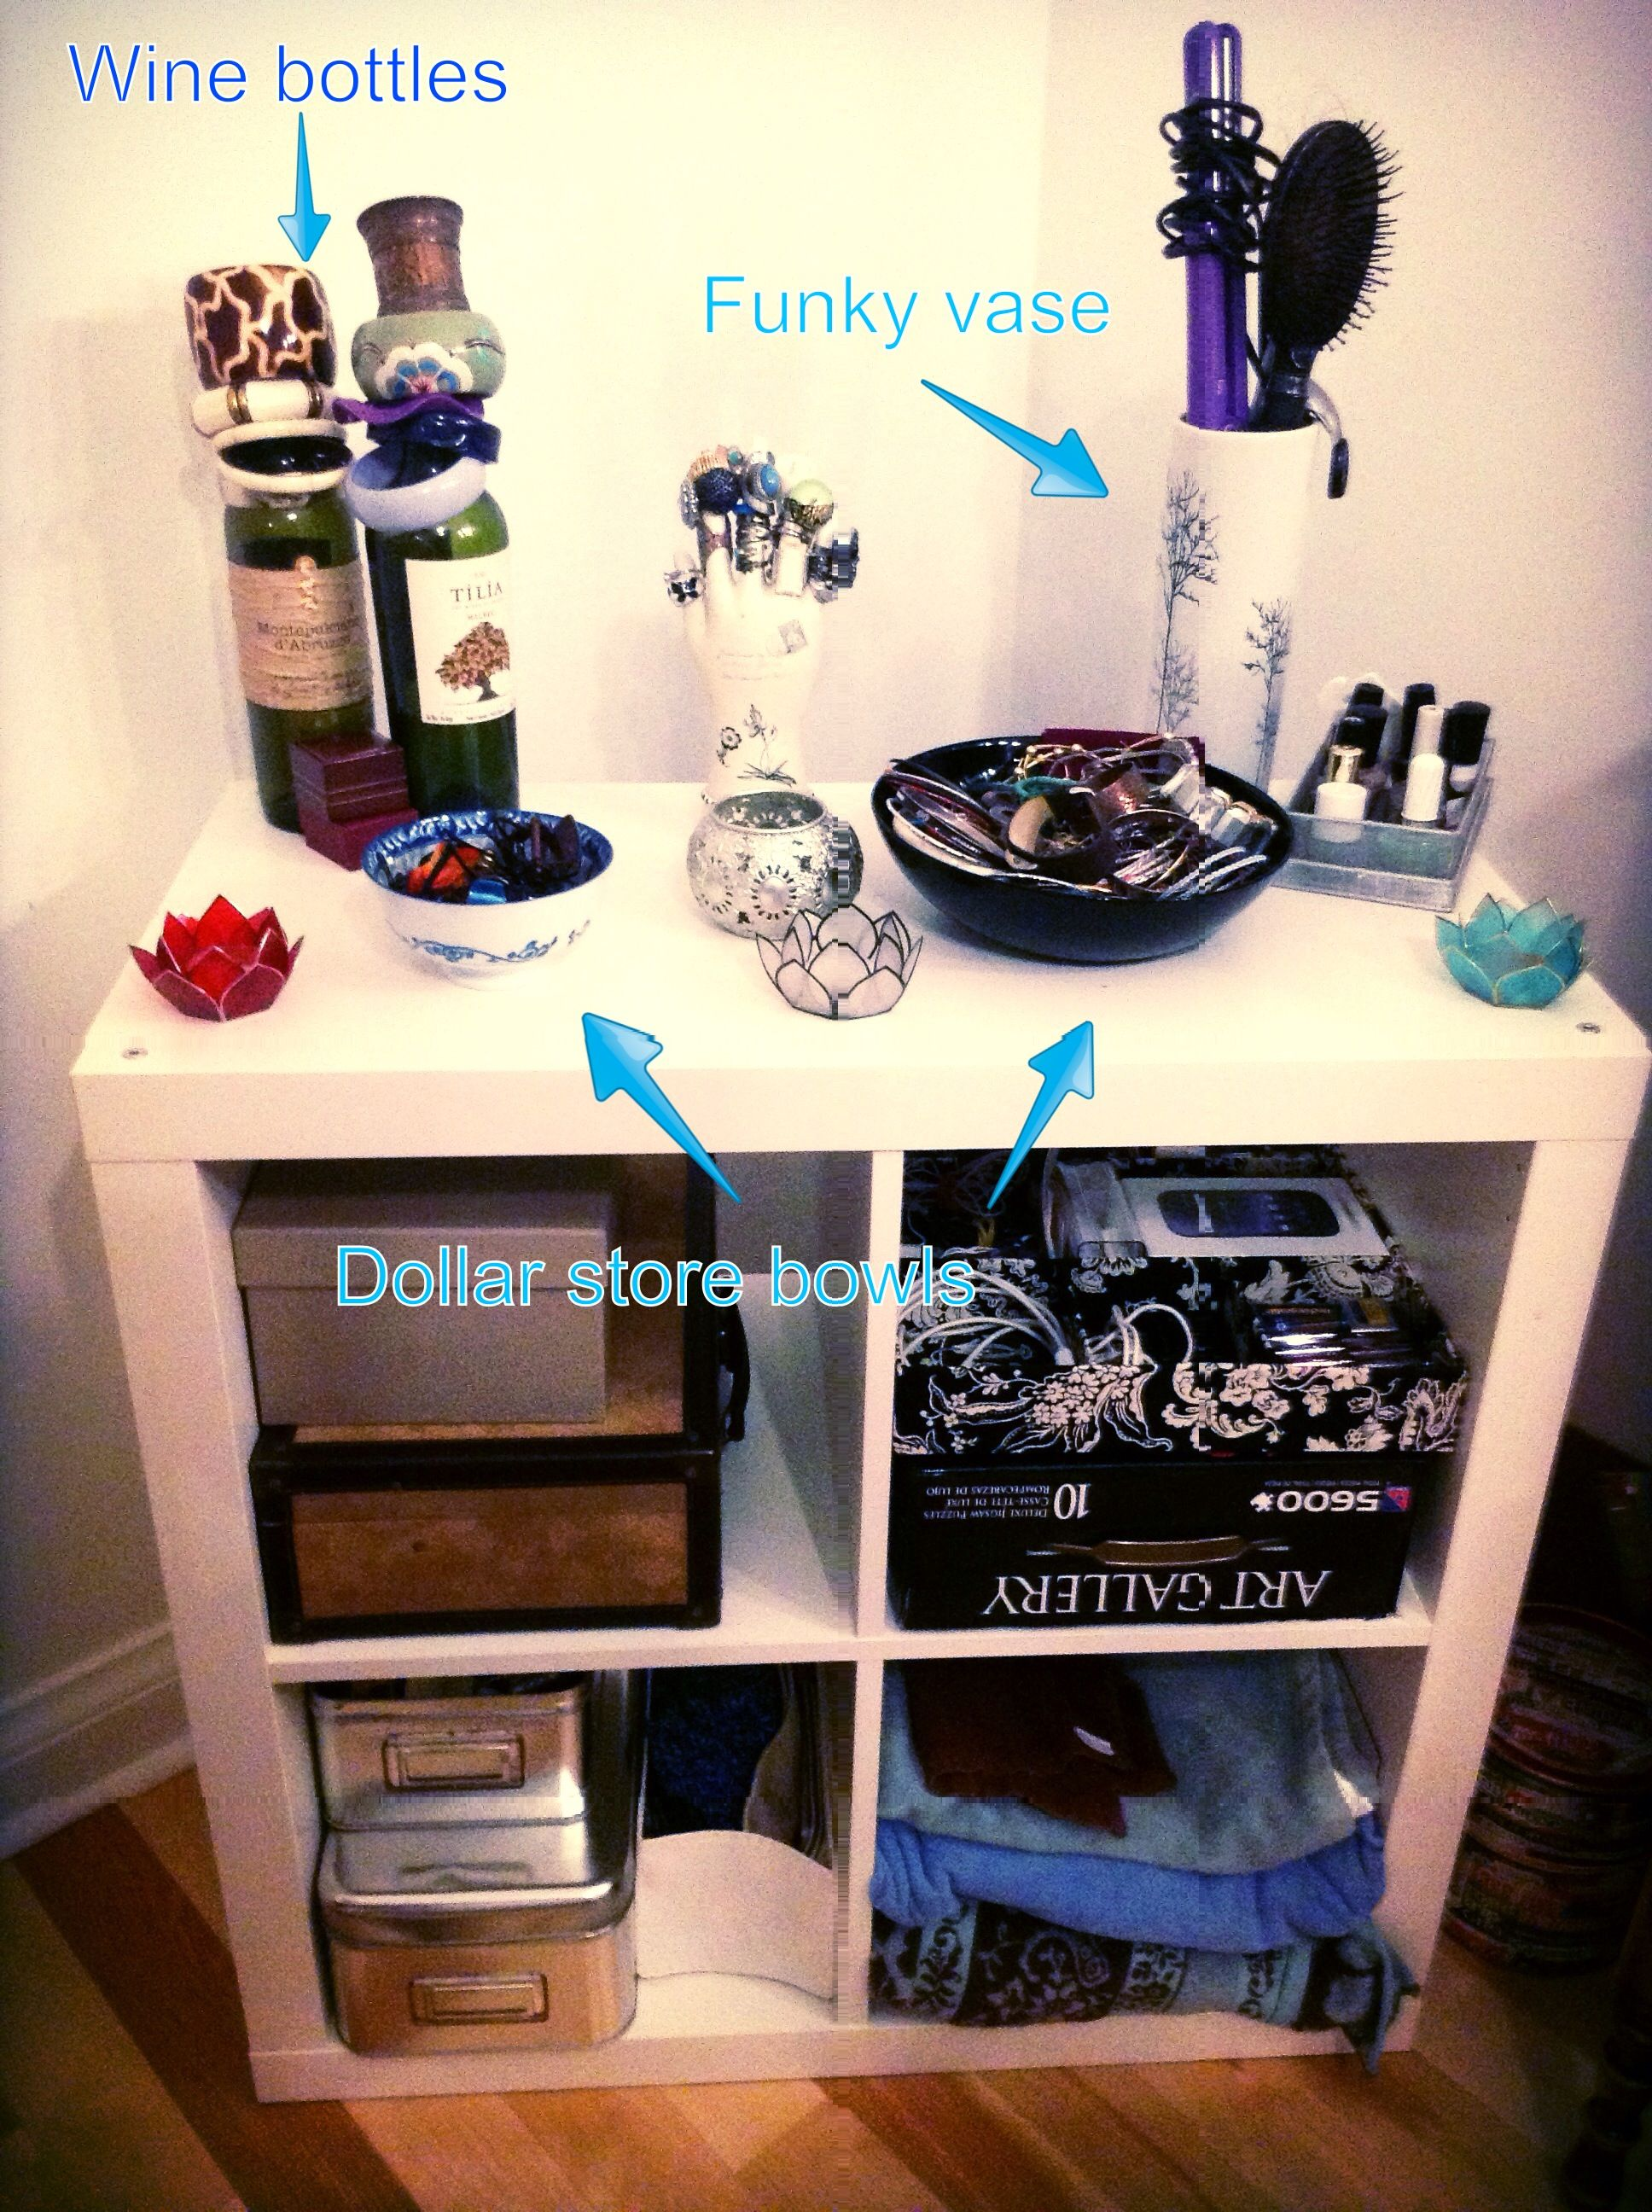 Bedroom Diy Organization With Recycled And Dollar Store Finds Diy Pinterest Diy